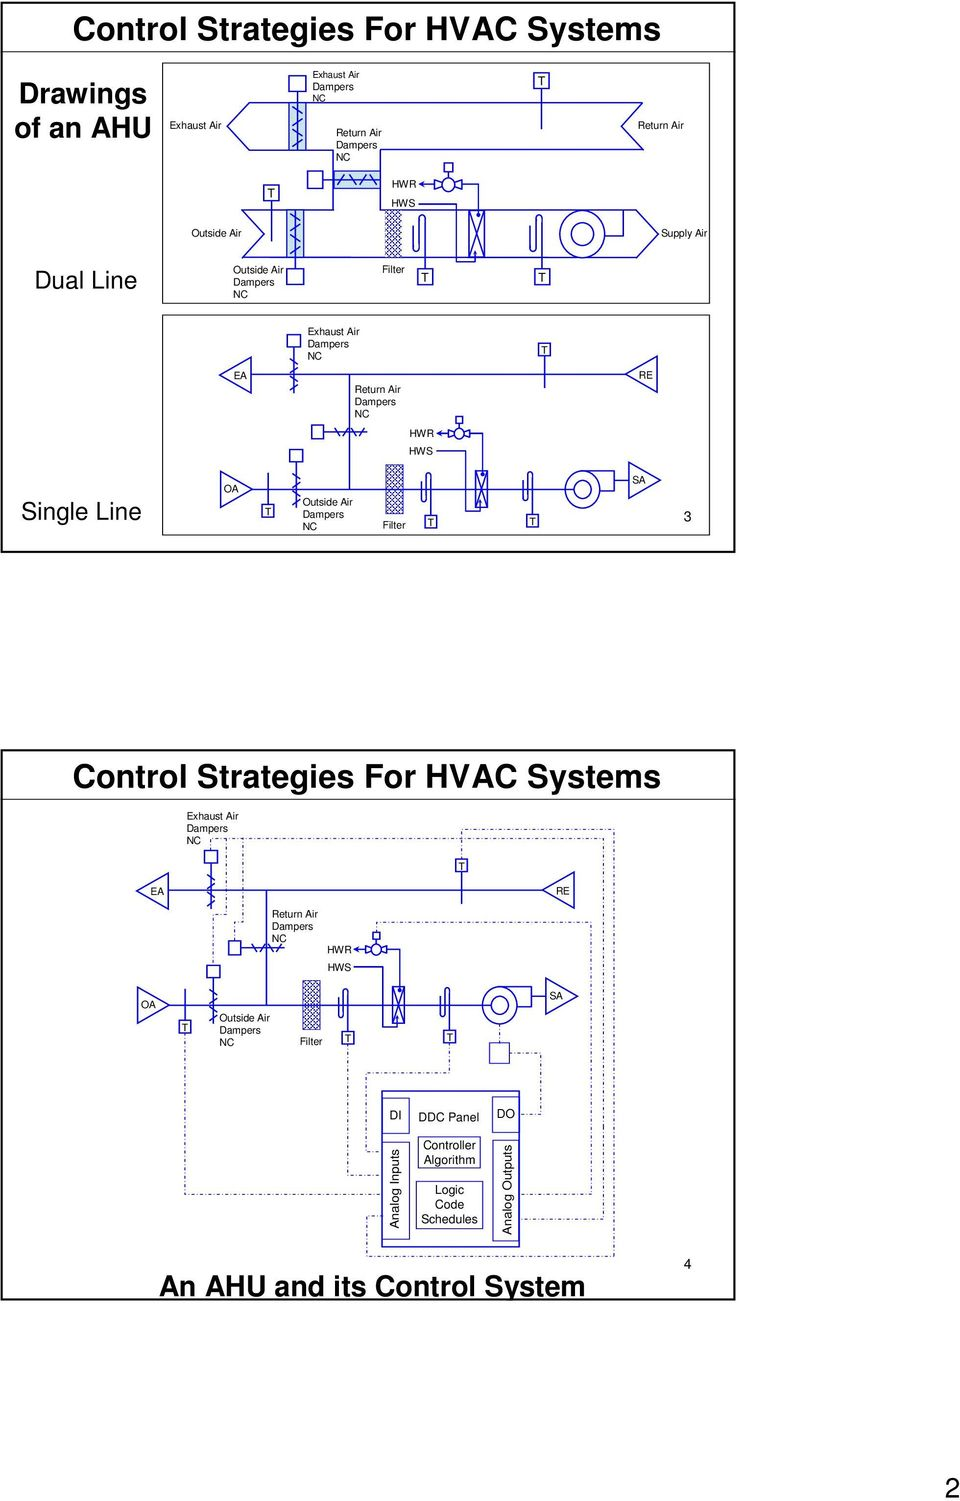 Control Strategies For Hvac Systems Pdf Drawing Basics Filter Sa 3 Exhaust Air Ea Re Return Hwr Hws Oa Outside